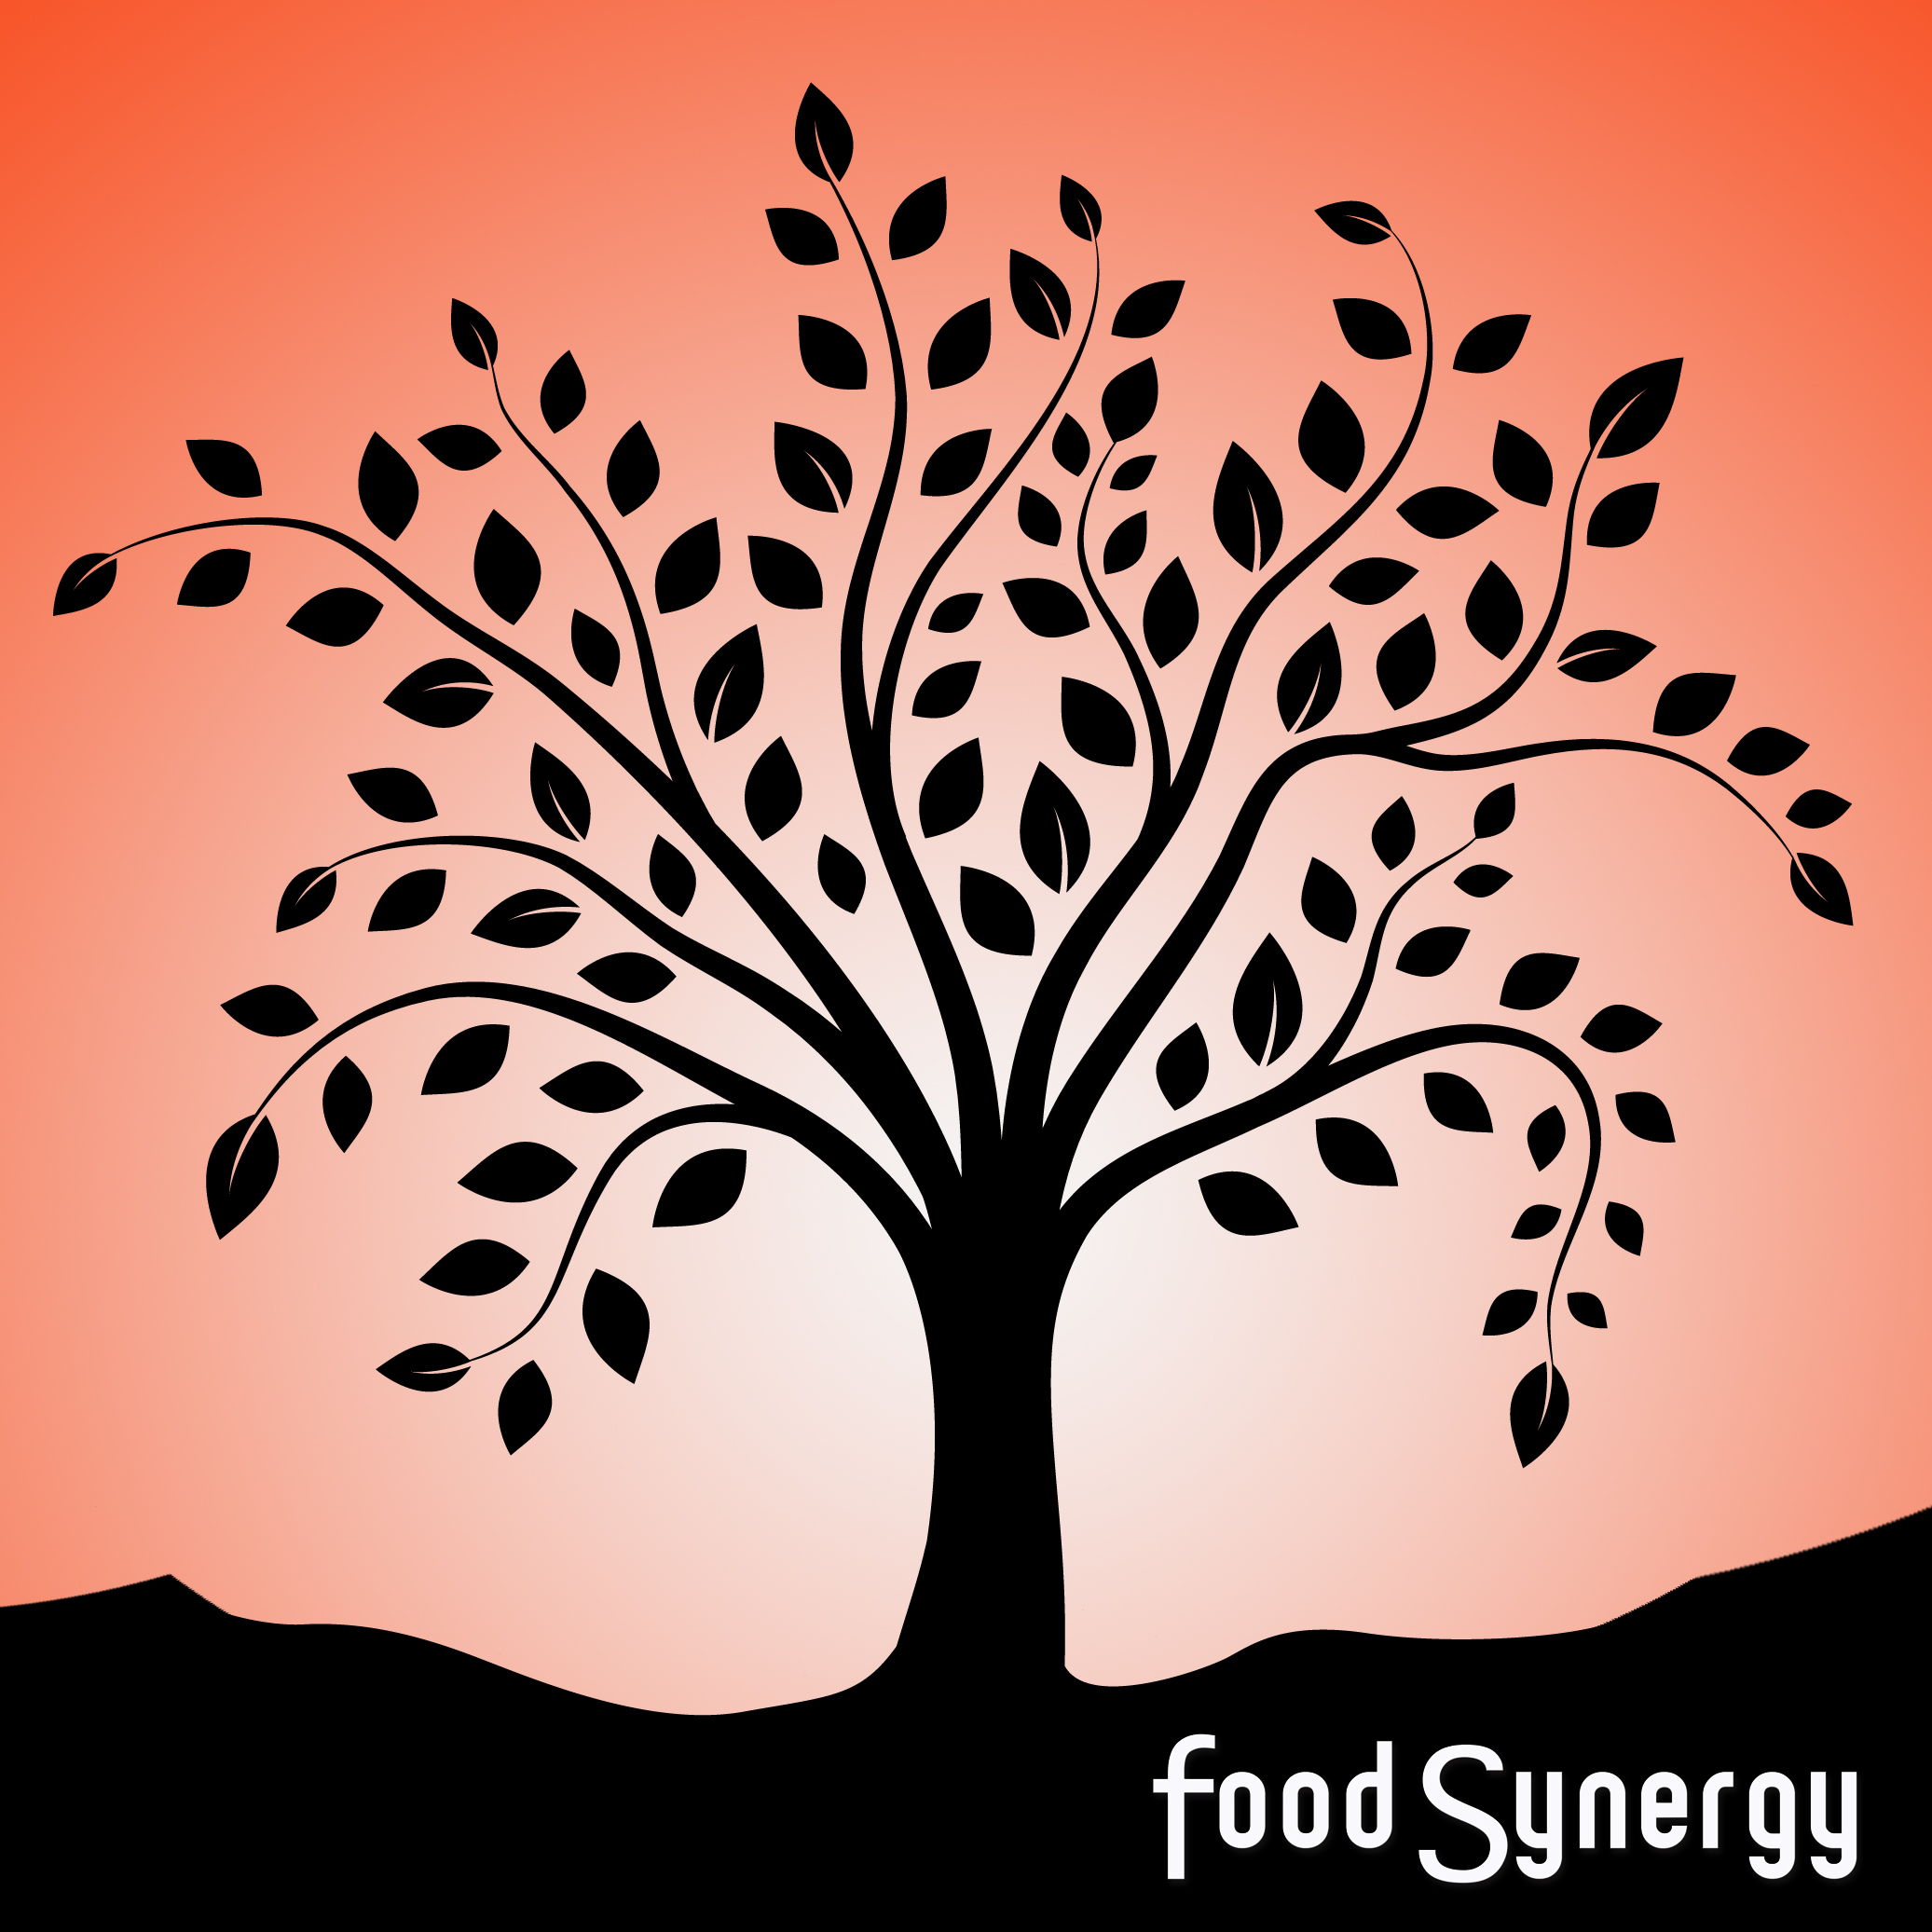 tree-foodsynergy-name-red-2000